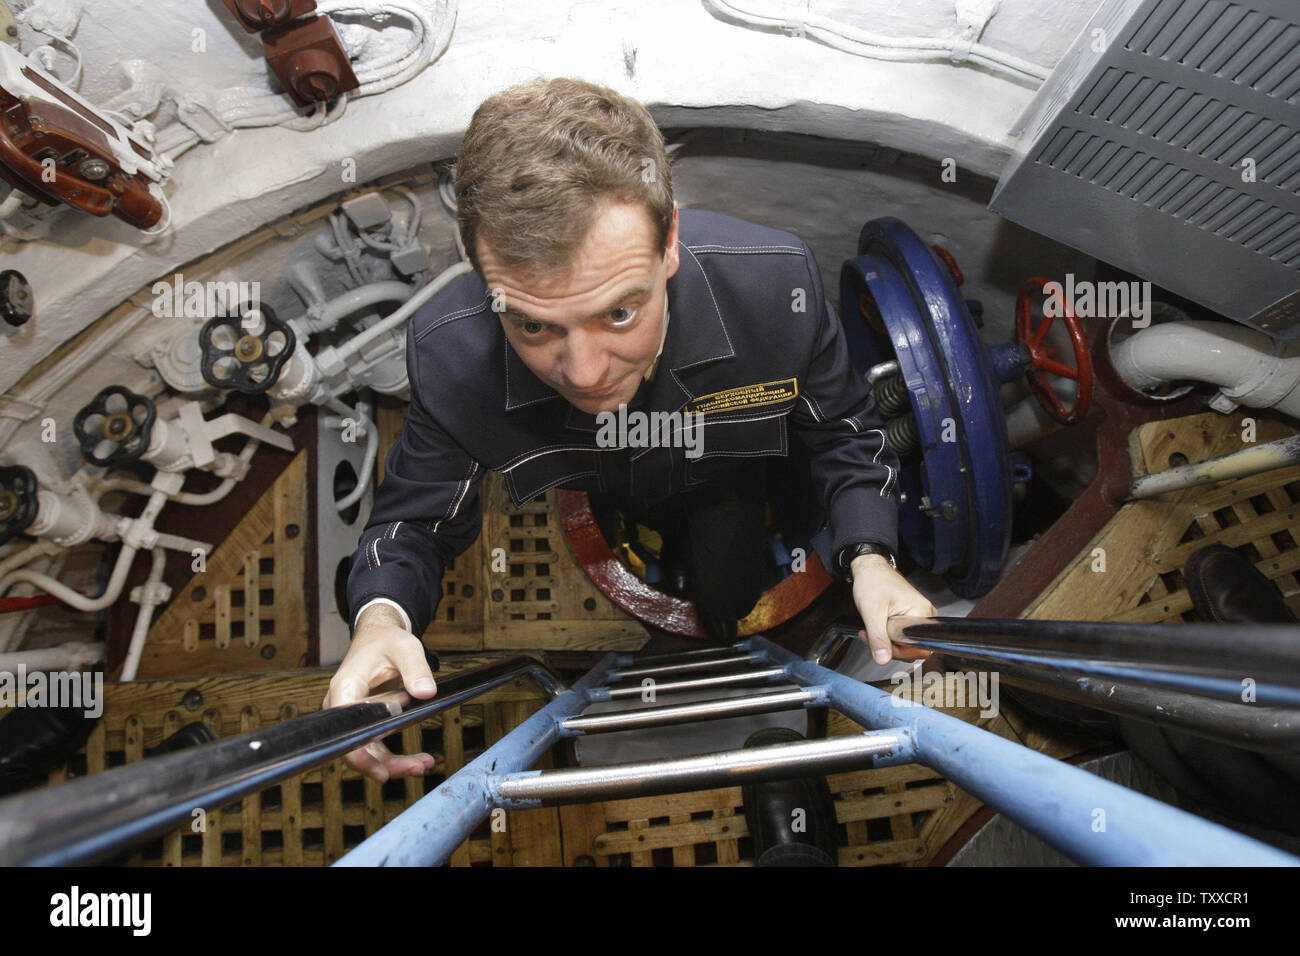 Russian President Dmitry Medvedev wearing NAVY uniform visits the 'St. George the Victor' nuclear powered submarine at the Russian Pacific Fleet submarine base at Krasheninnikov Harbor on the Kamchatka Peninsula in the Russian Far East on September 25, 2008. (UPI Photo/Anatoli Zhdanov) - Stock Image